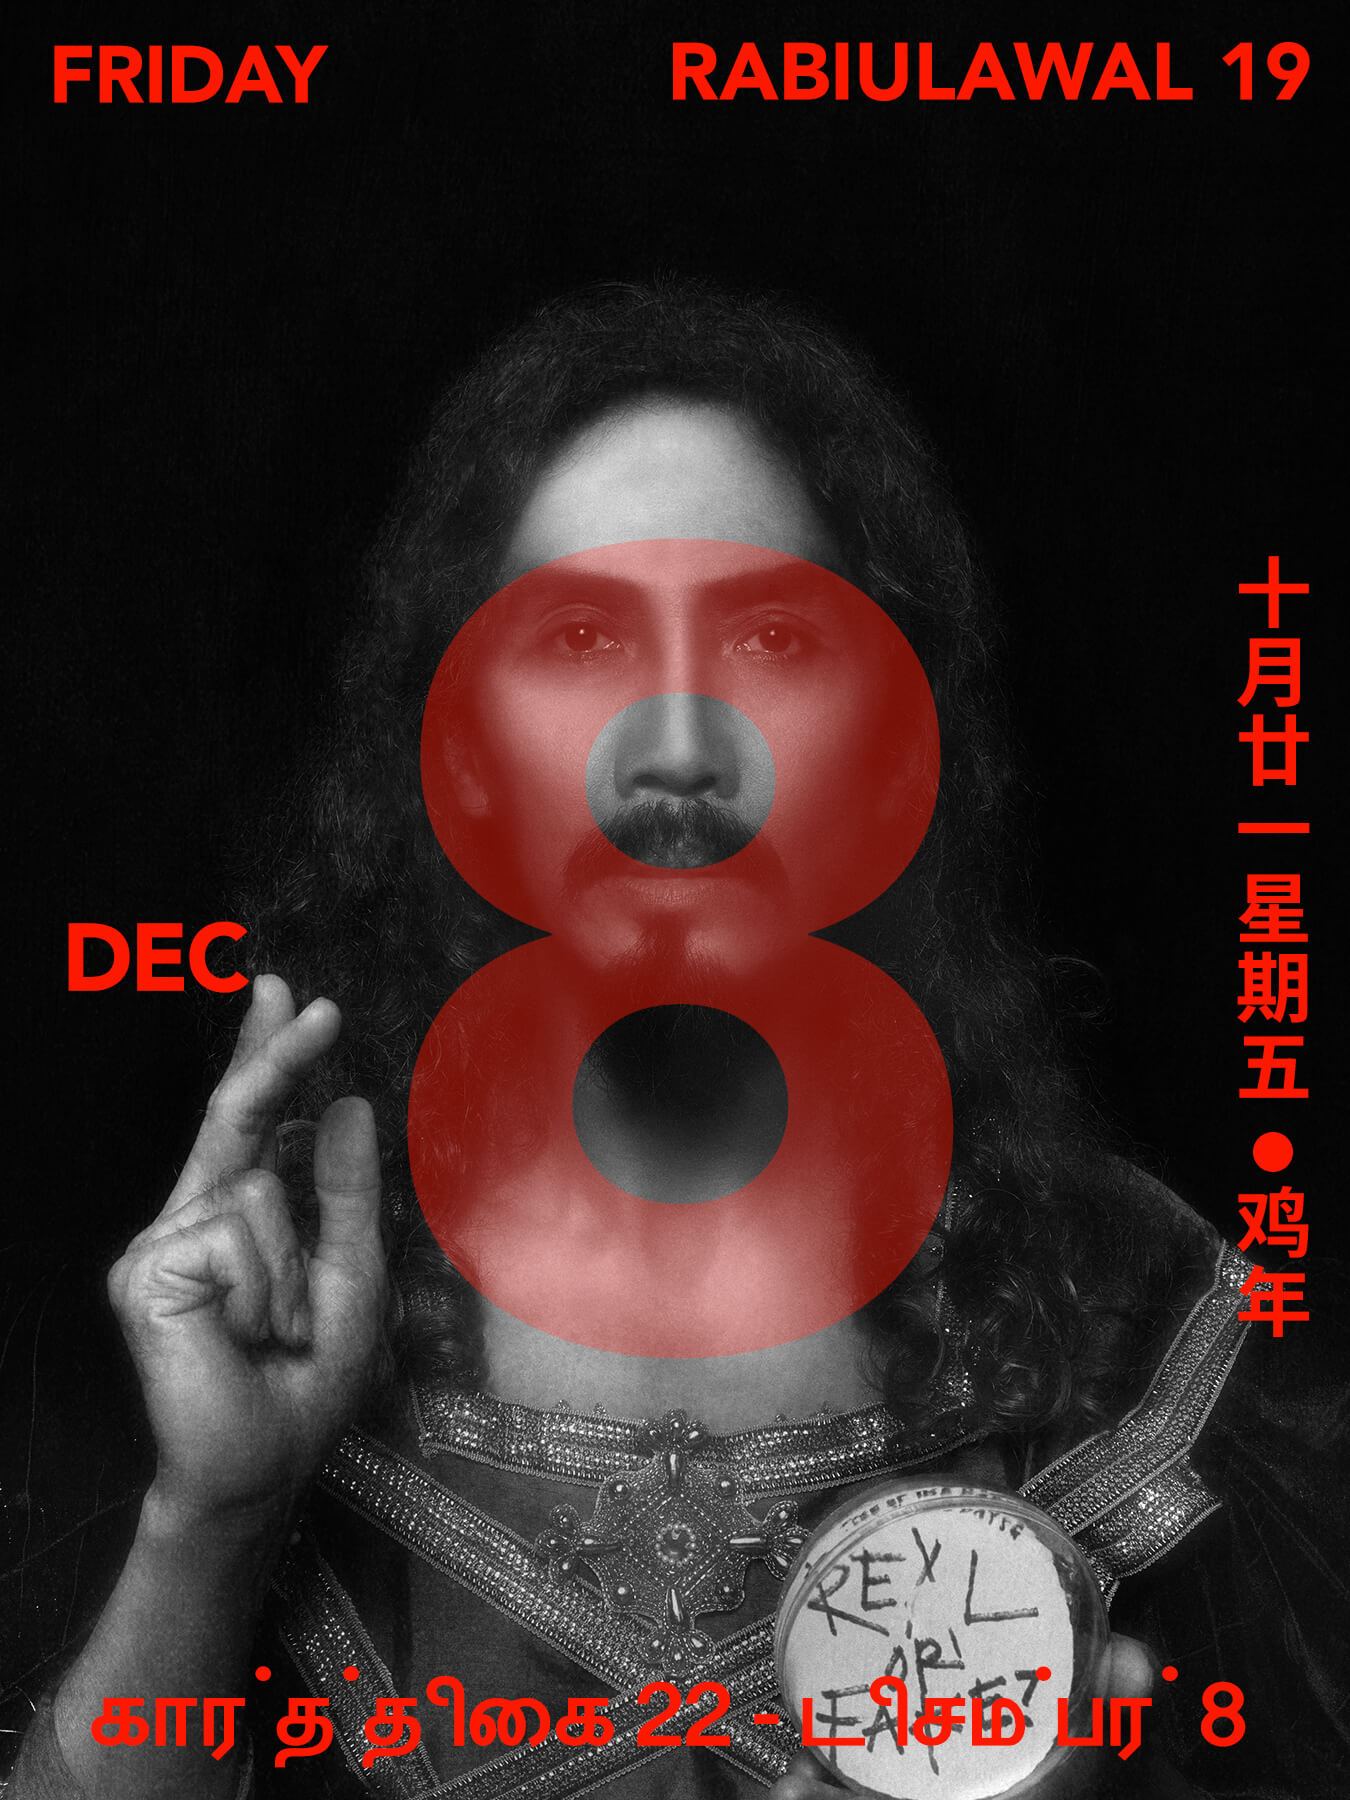 8 Dec 2017 Derong is photographed as Leonardo da Vinci's Salvator Mundi